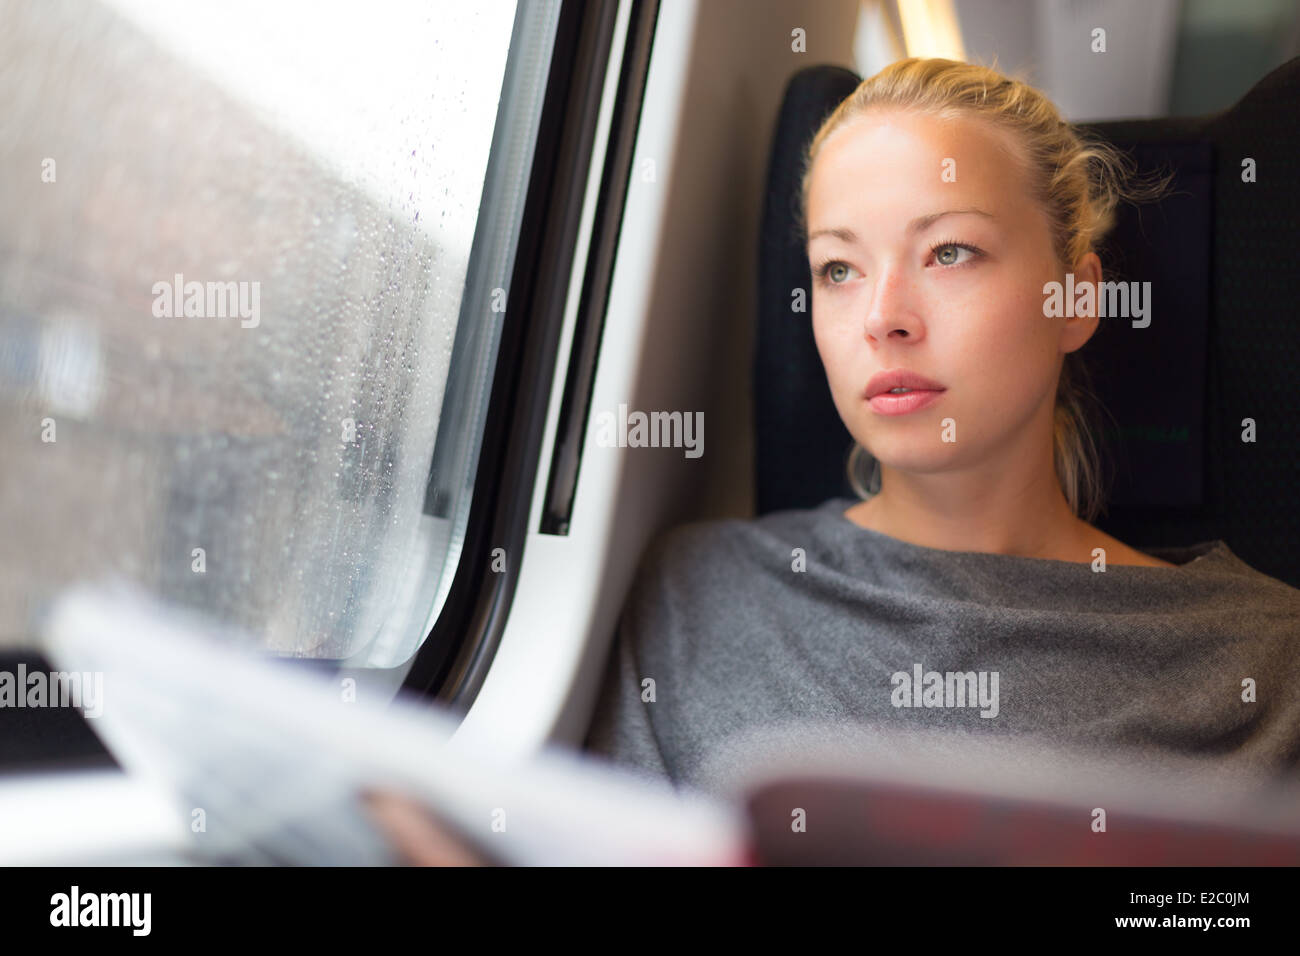 Dame voyageant en train. Photo Stock